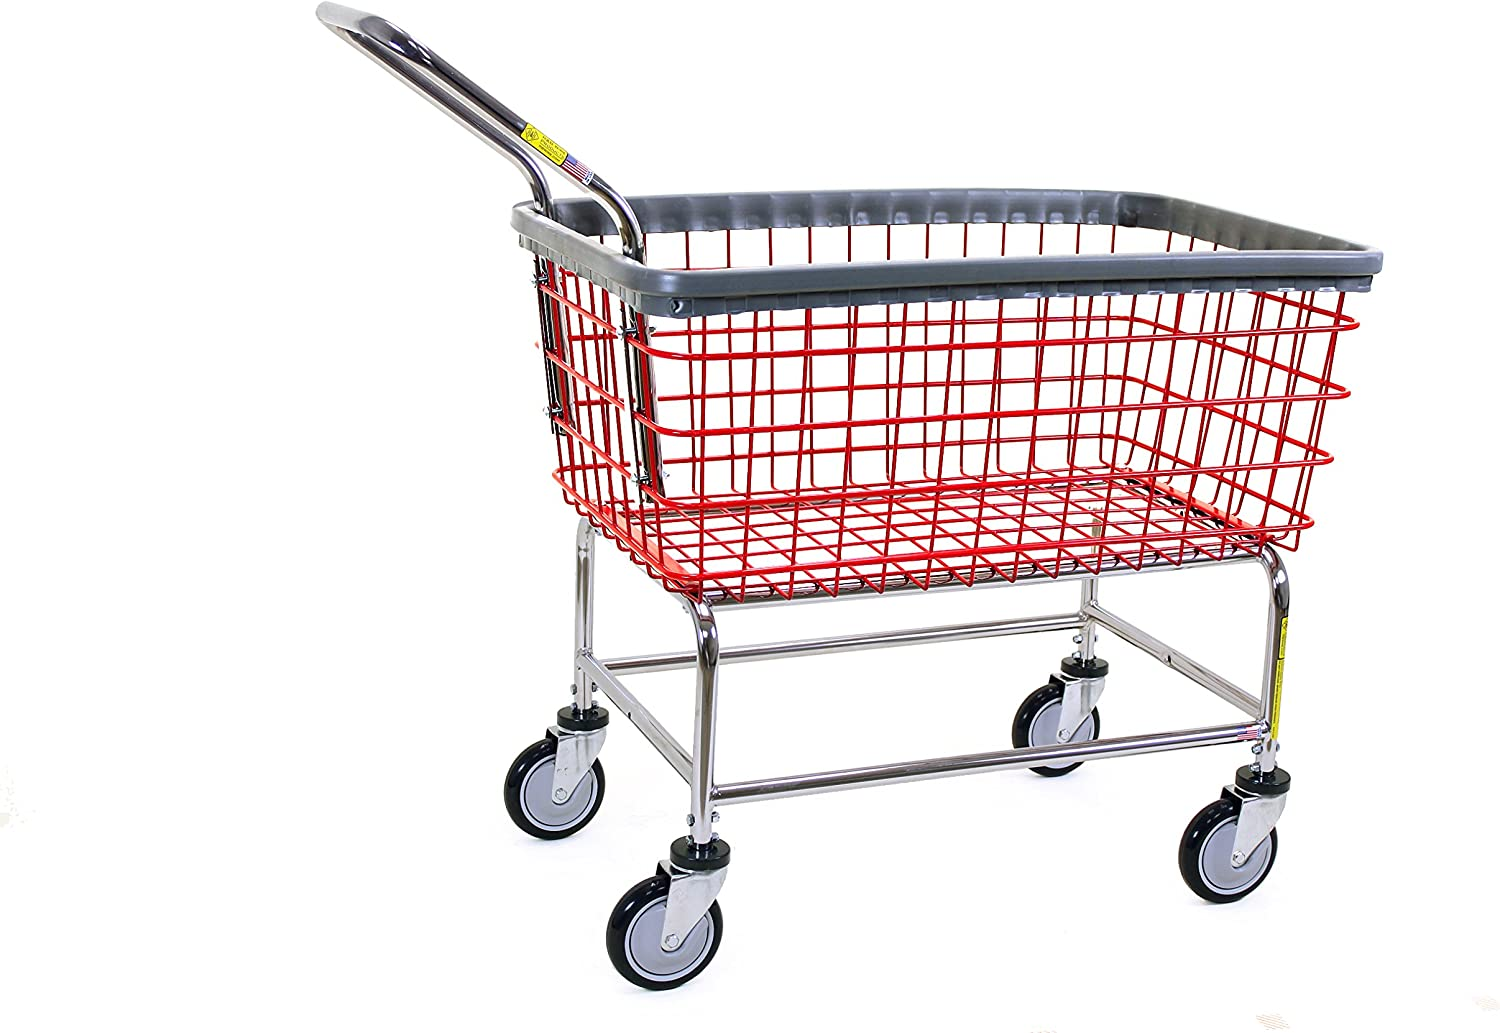 R&B Wire 200F Large Capacity Wire Rolling Laundry Cart with Clean Wheel System and Handle - Red Basket